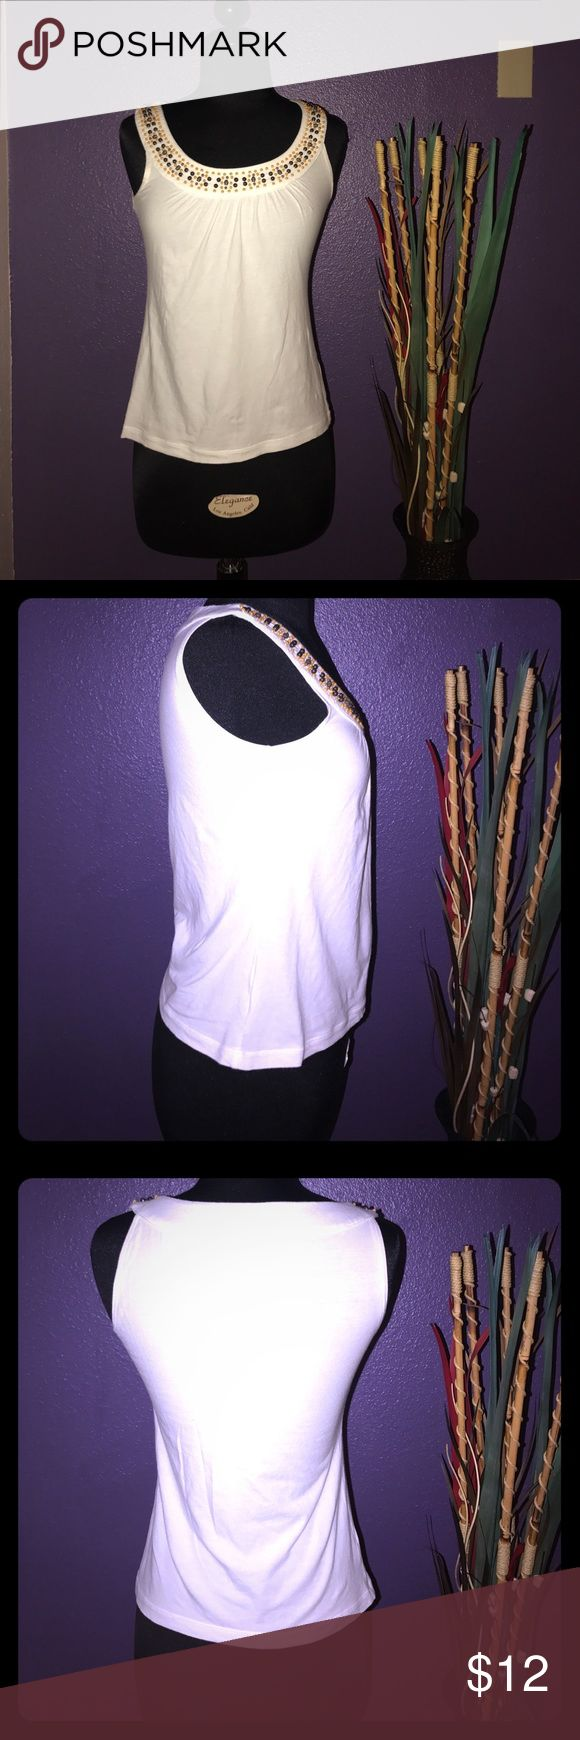 Anne Taylor LOFT white top size XSP Excellent condition cute XSP (extra small petite) white tank top with beaded design around the neck line. No holes rips or tears. All beads are all intact!! This shirt I would wash and always hang dry to prevent beads from falling off in the dryer. LOFT Tops Tank Tops